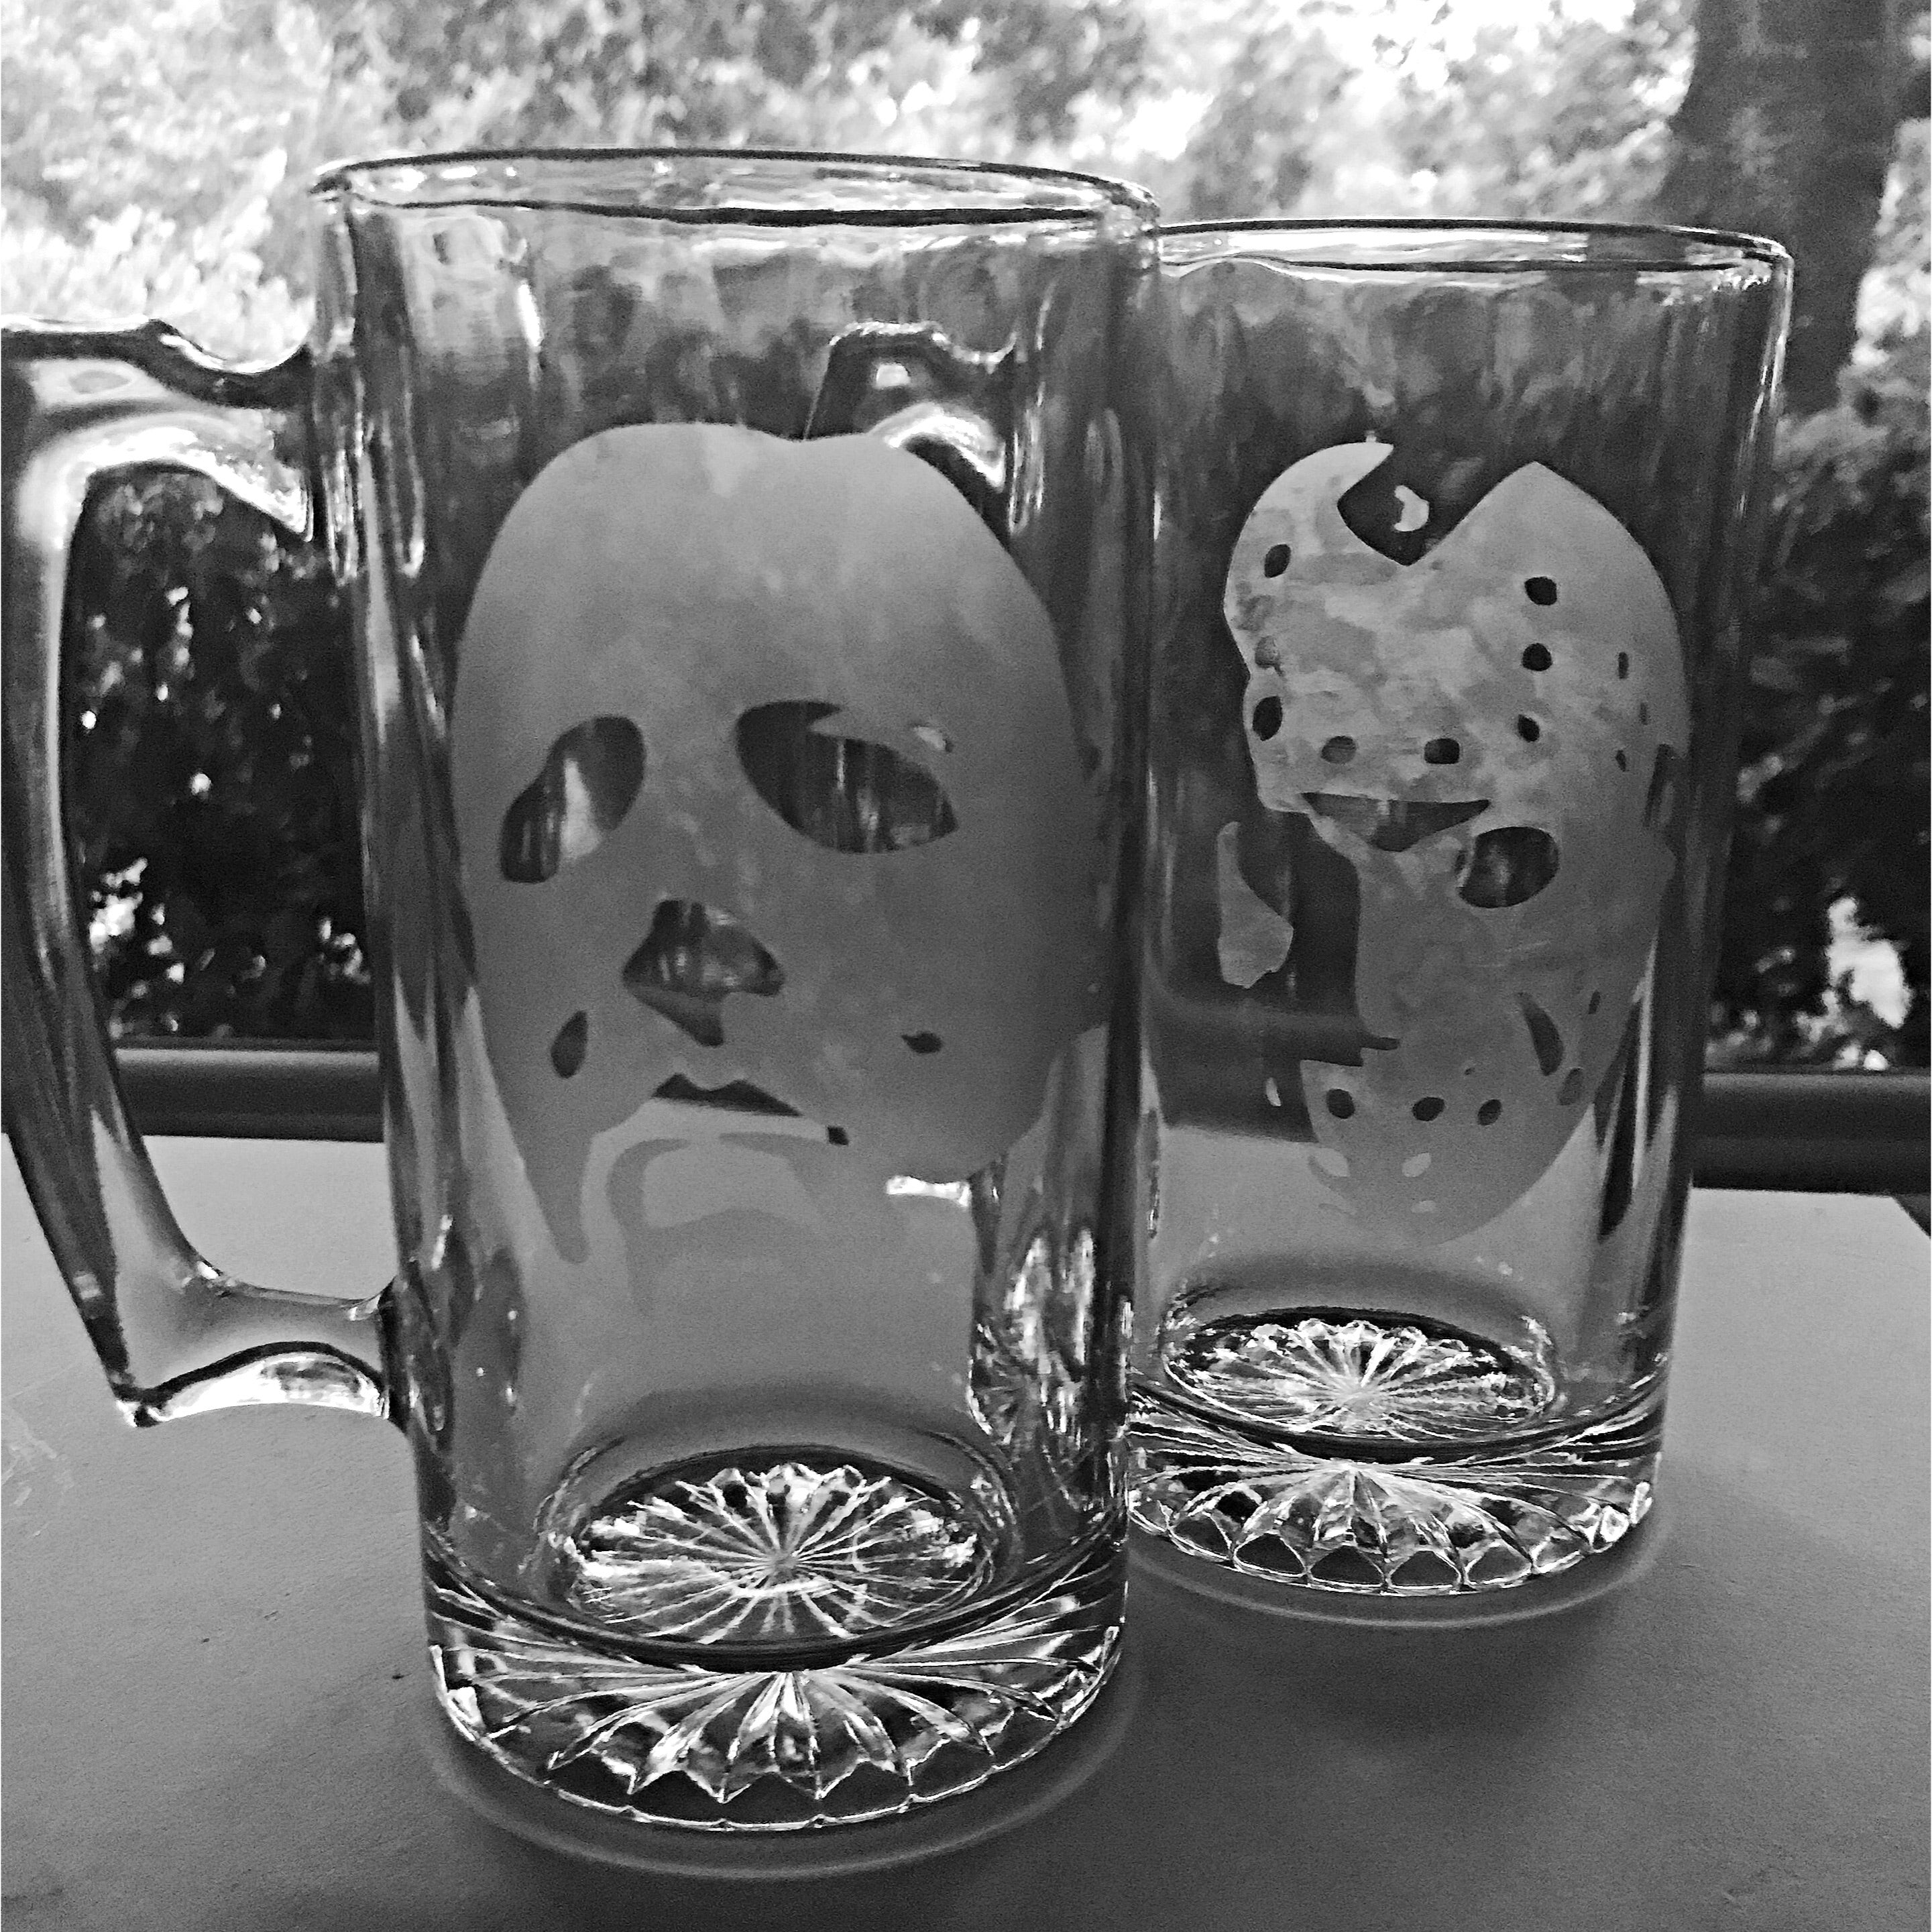 Oct 28: Slashers and Steins